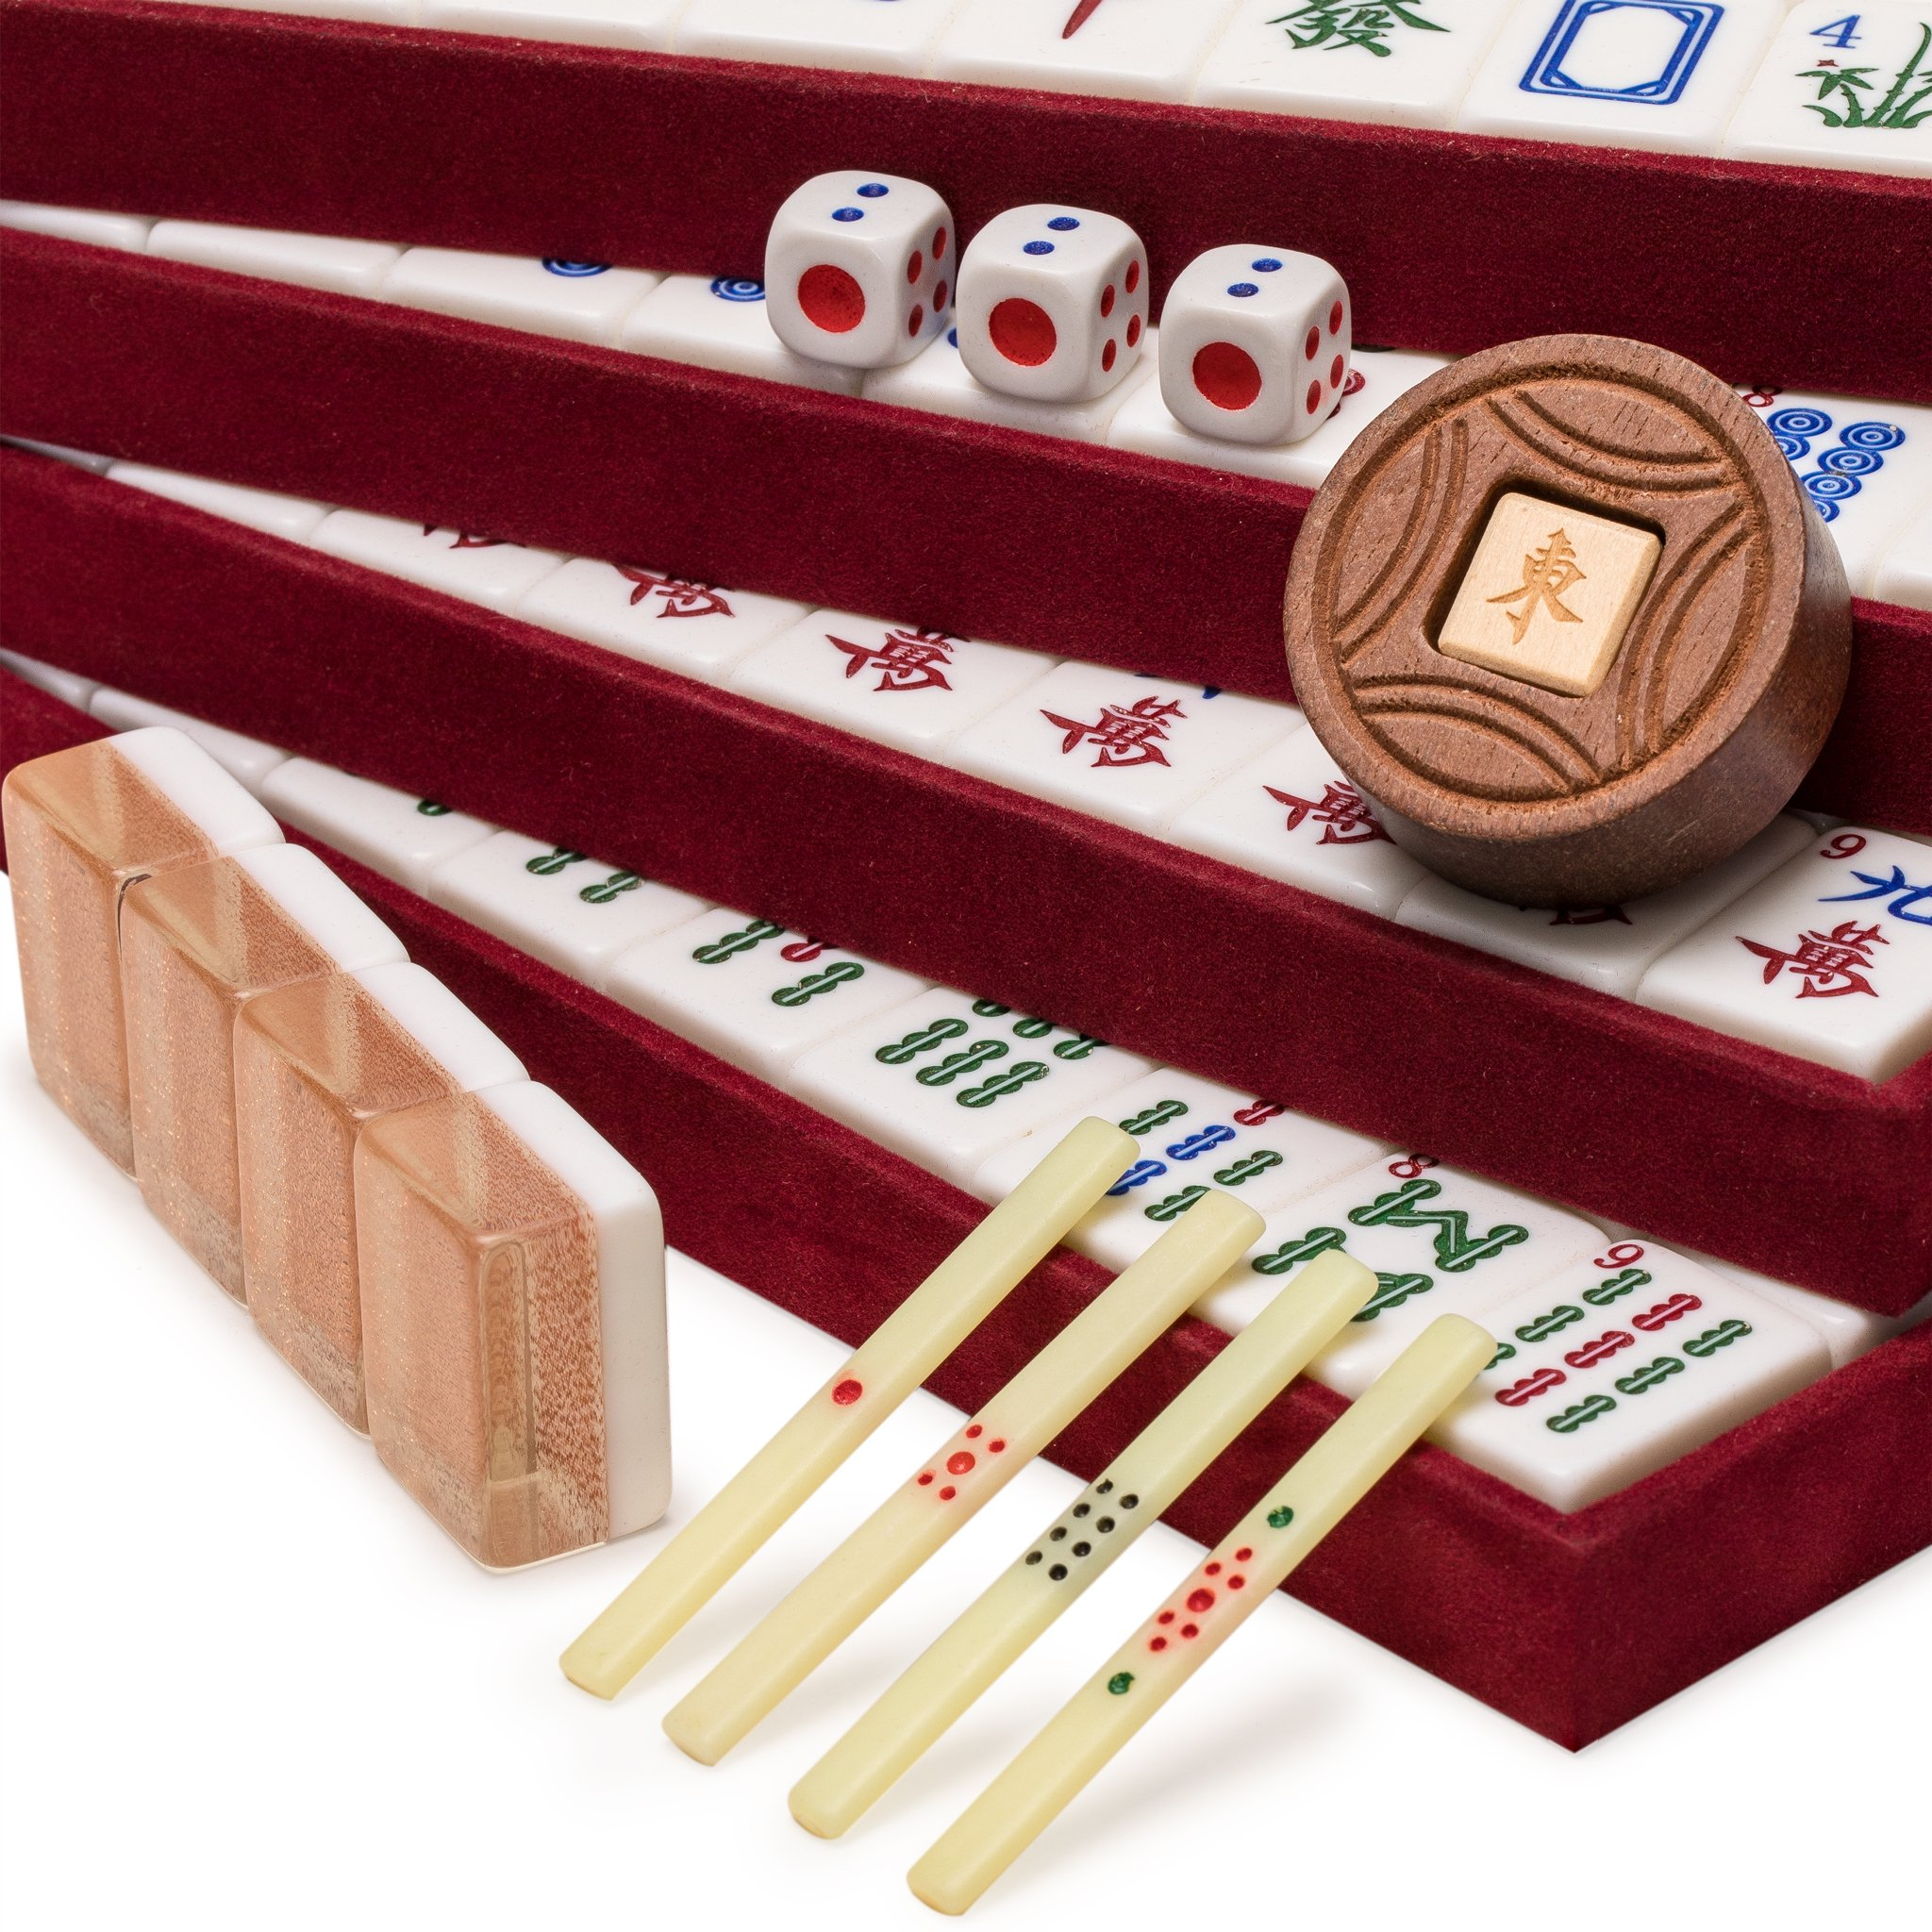 Yellow Mountain Imports Chinese Mahjong Set, Champagne Gold - with Wood Veneer Case - Medium Size Tiles: 1.3 x 1 x 0.7 inches (34mm x 25mm x 19mm) - for Chinese Style Gameplay Only by Yellow Mountain Imports (Image #3)